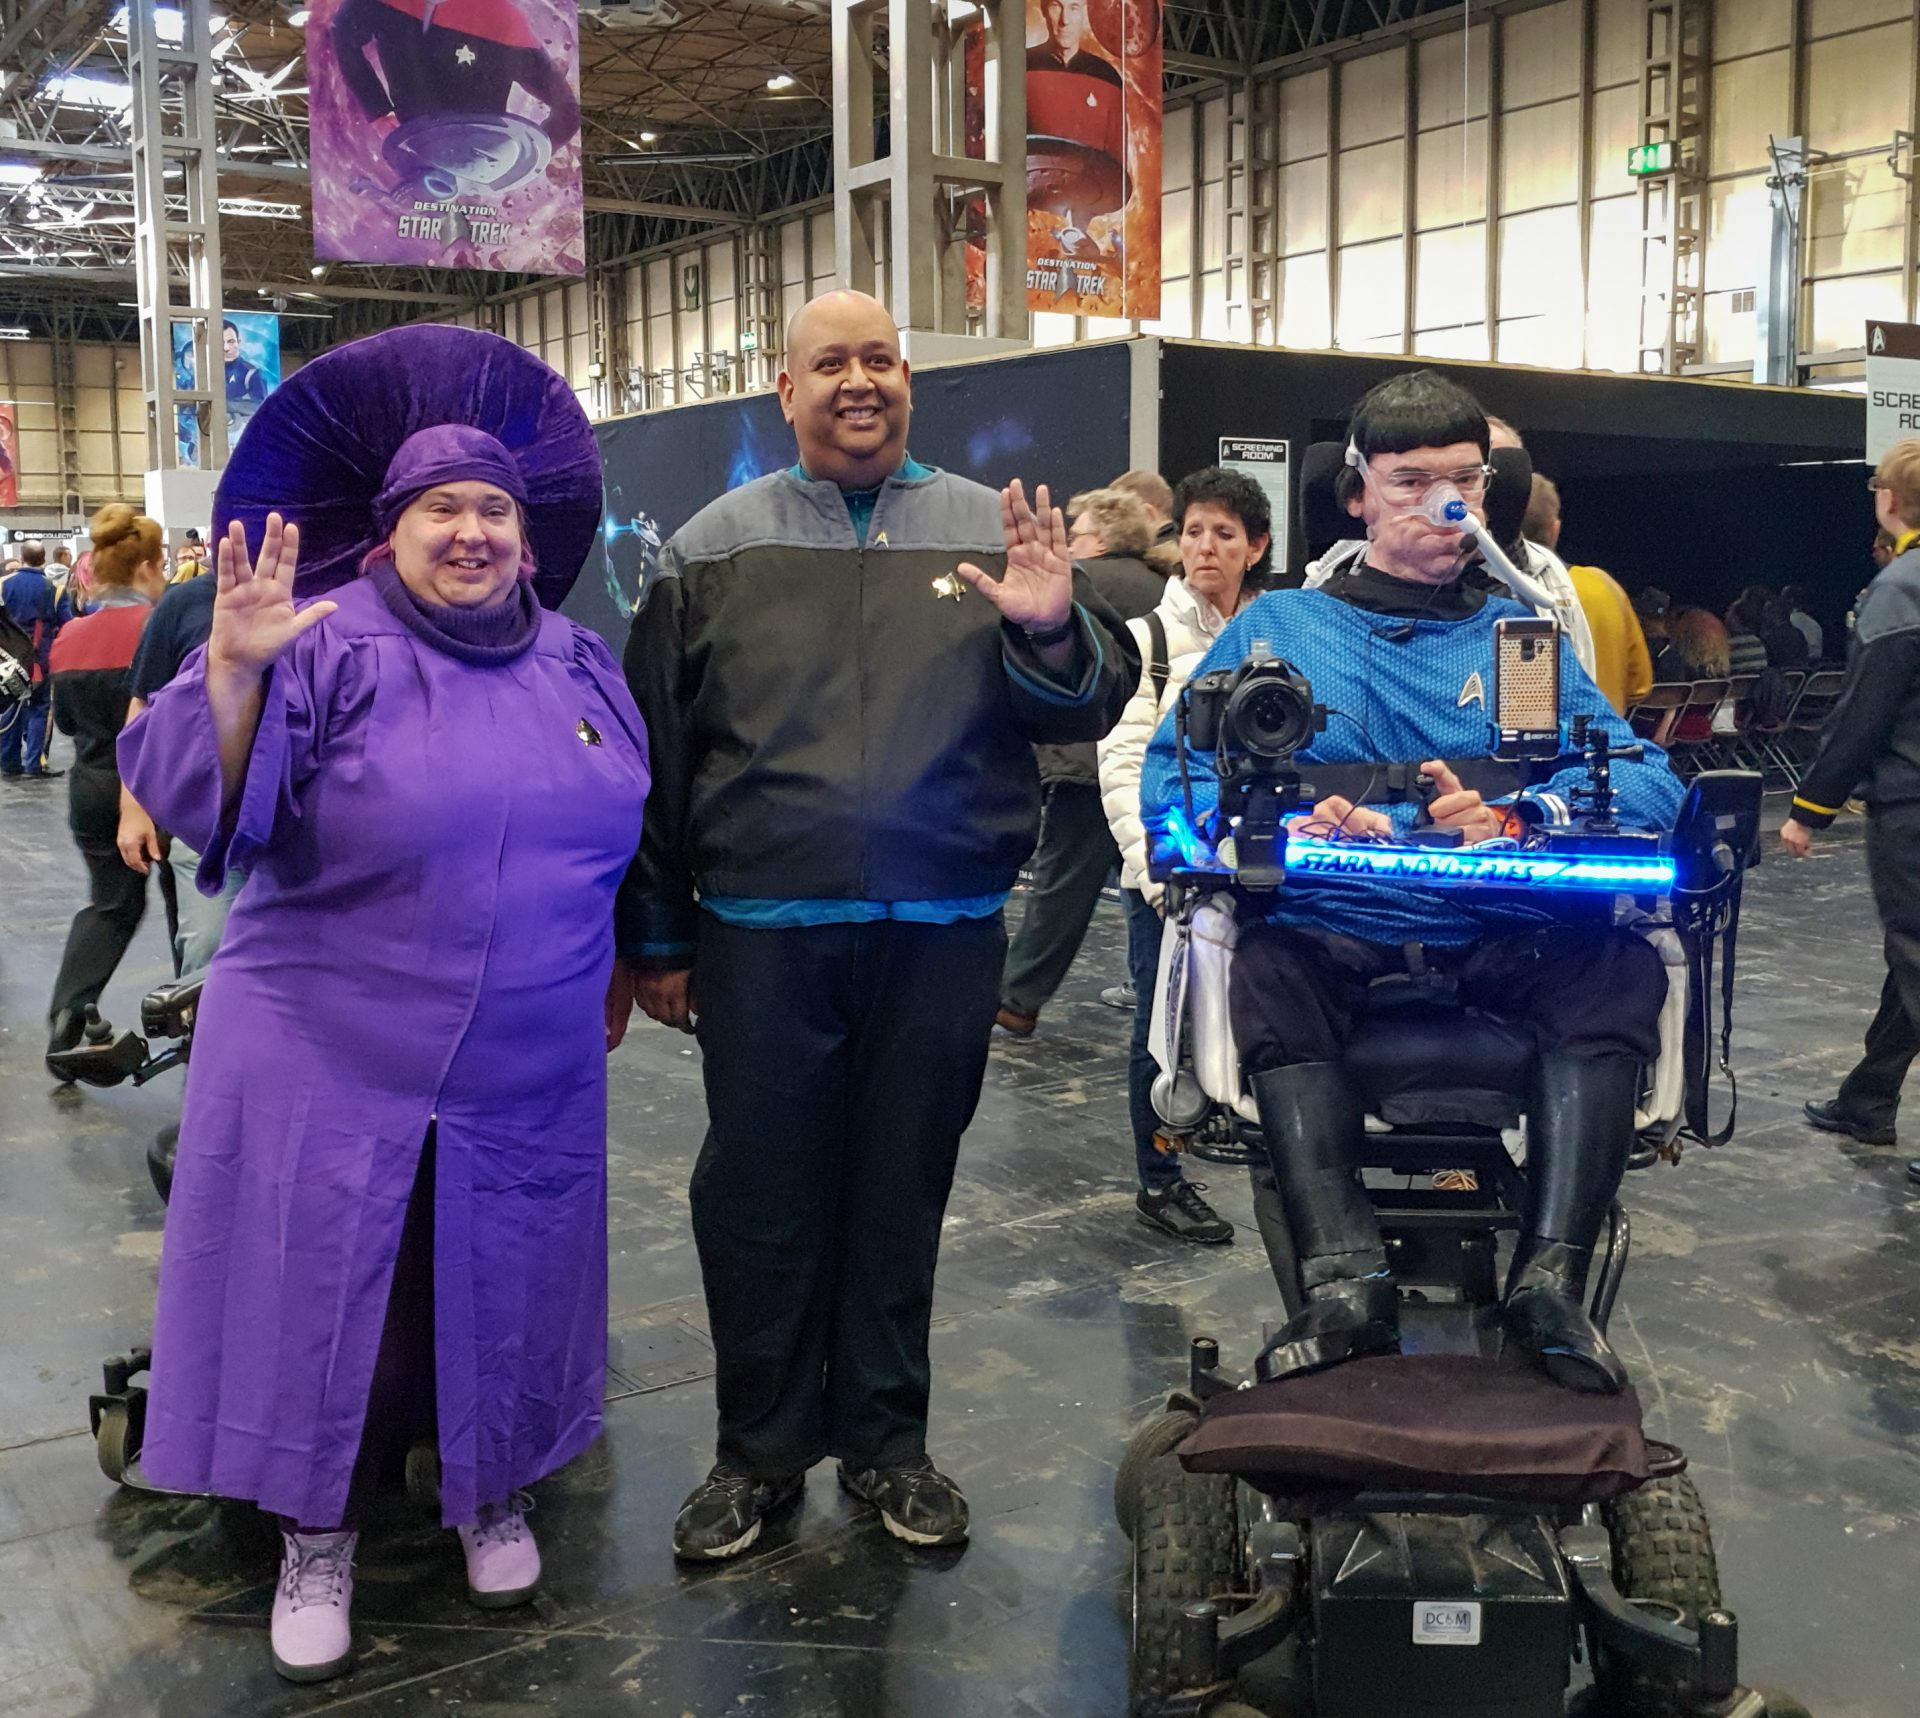 Daniel Baker Dressed Spock with cosplayers